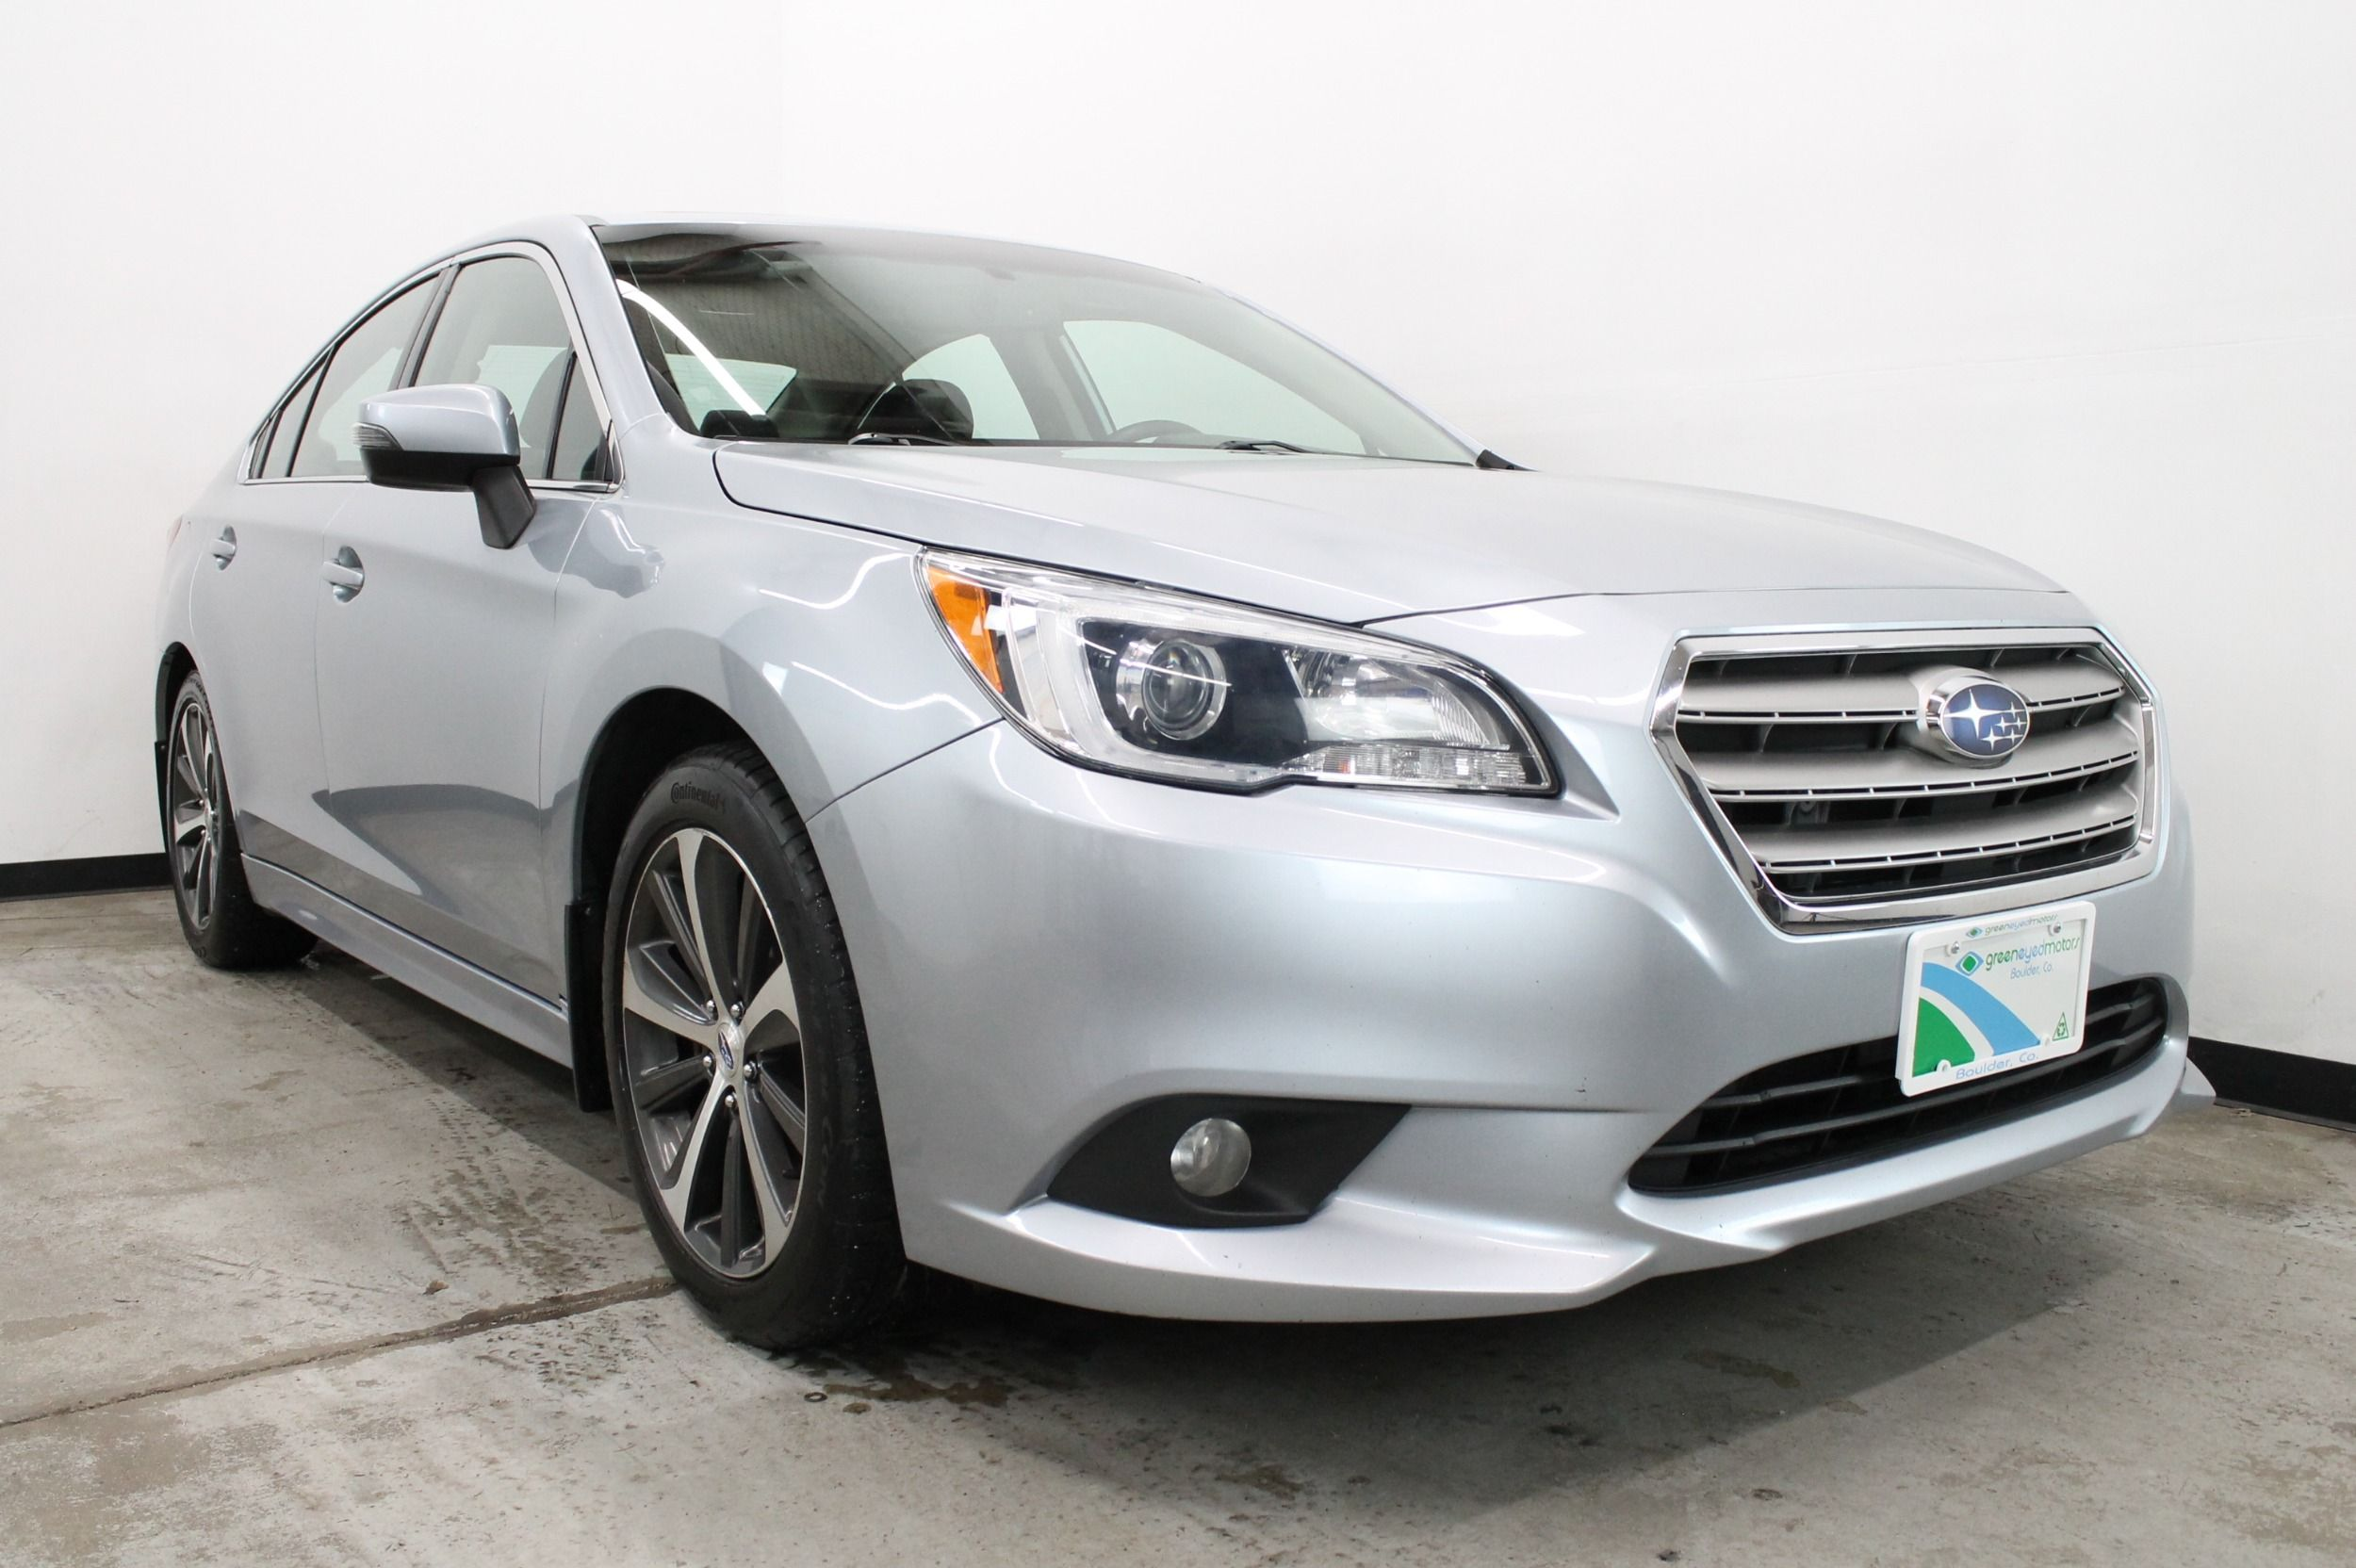 Subaru Legacy: Auto-dimming mirror with compass (if equipped)